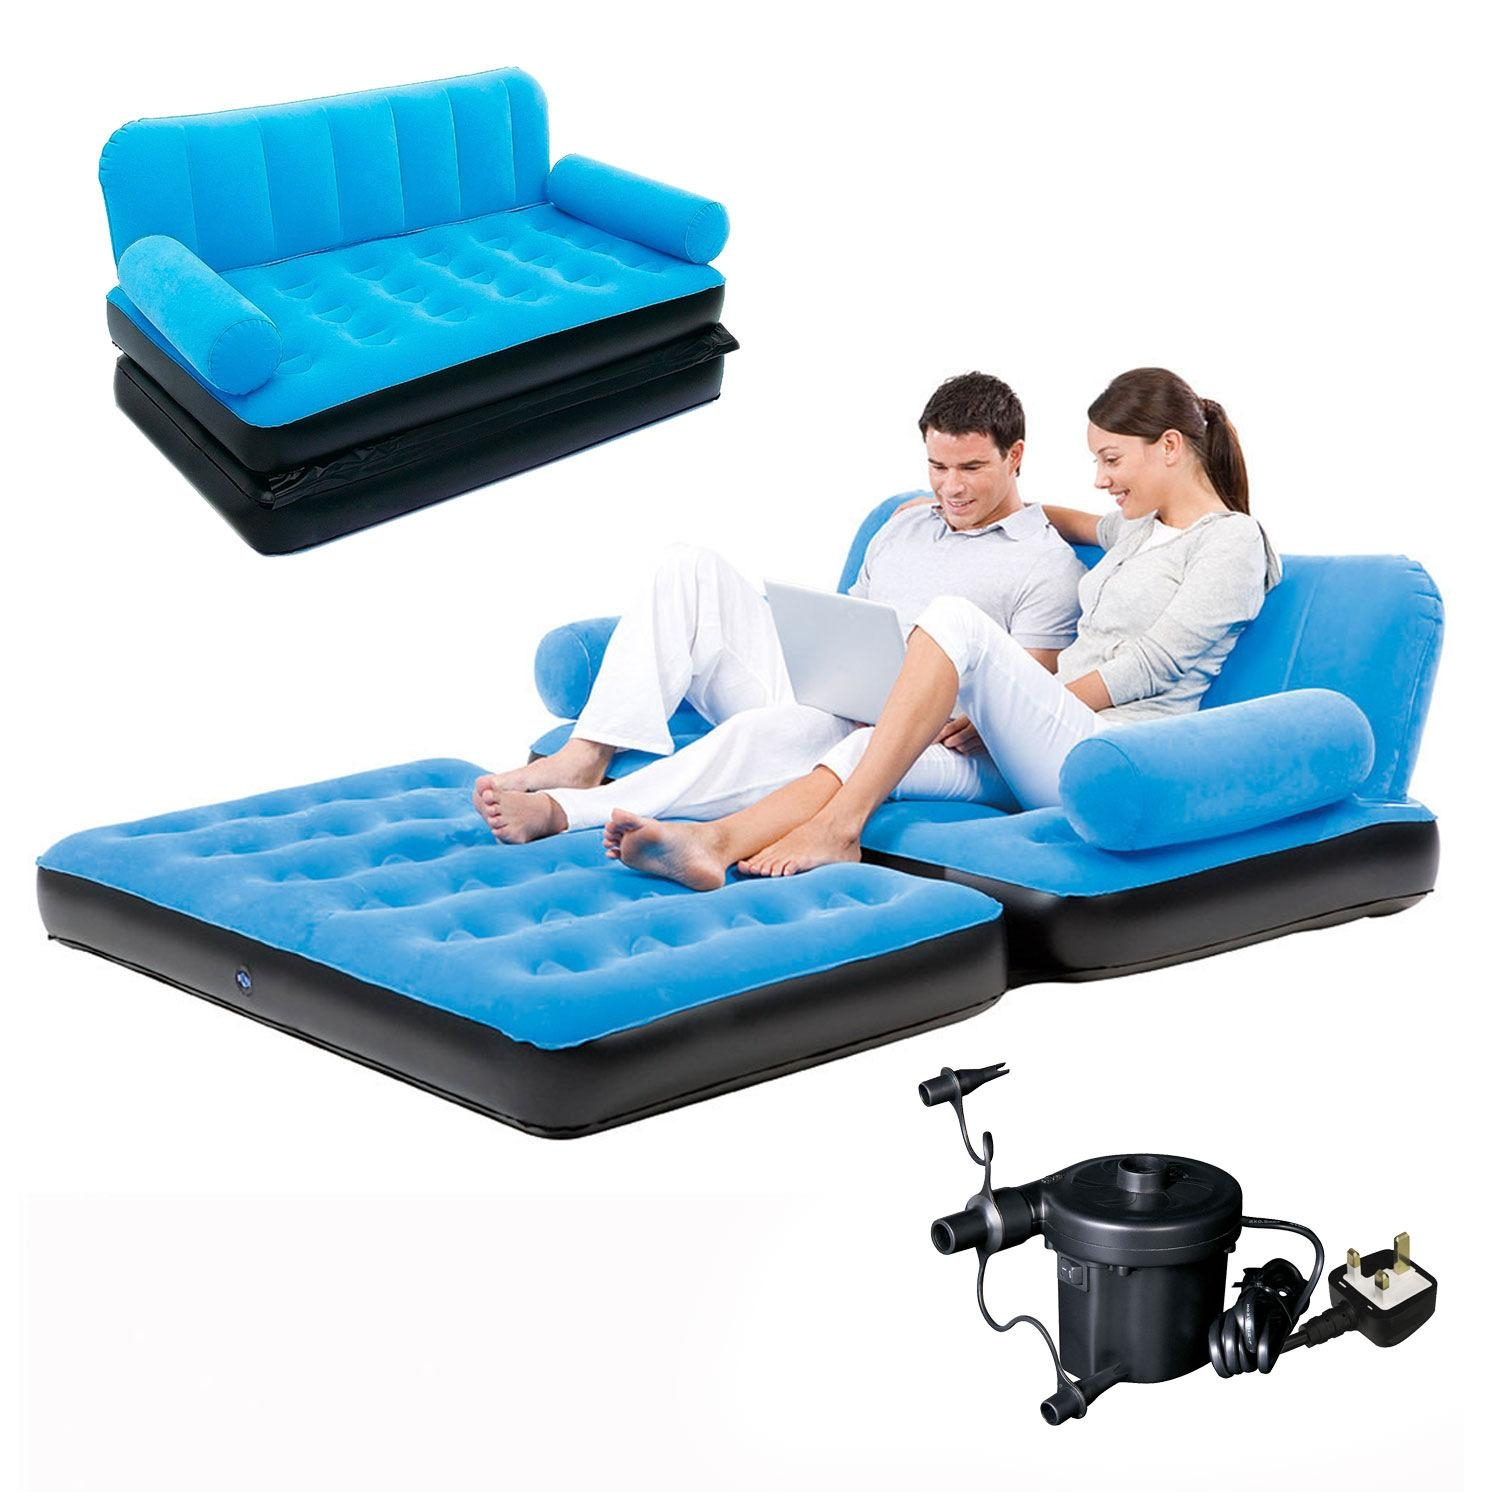 intex inflatable sofa set of two pieces george nelson marshmallow 20 43 choices sofas ideas